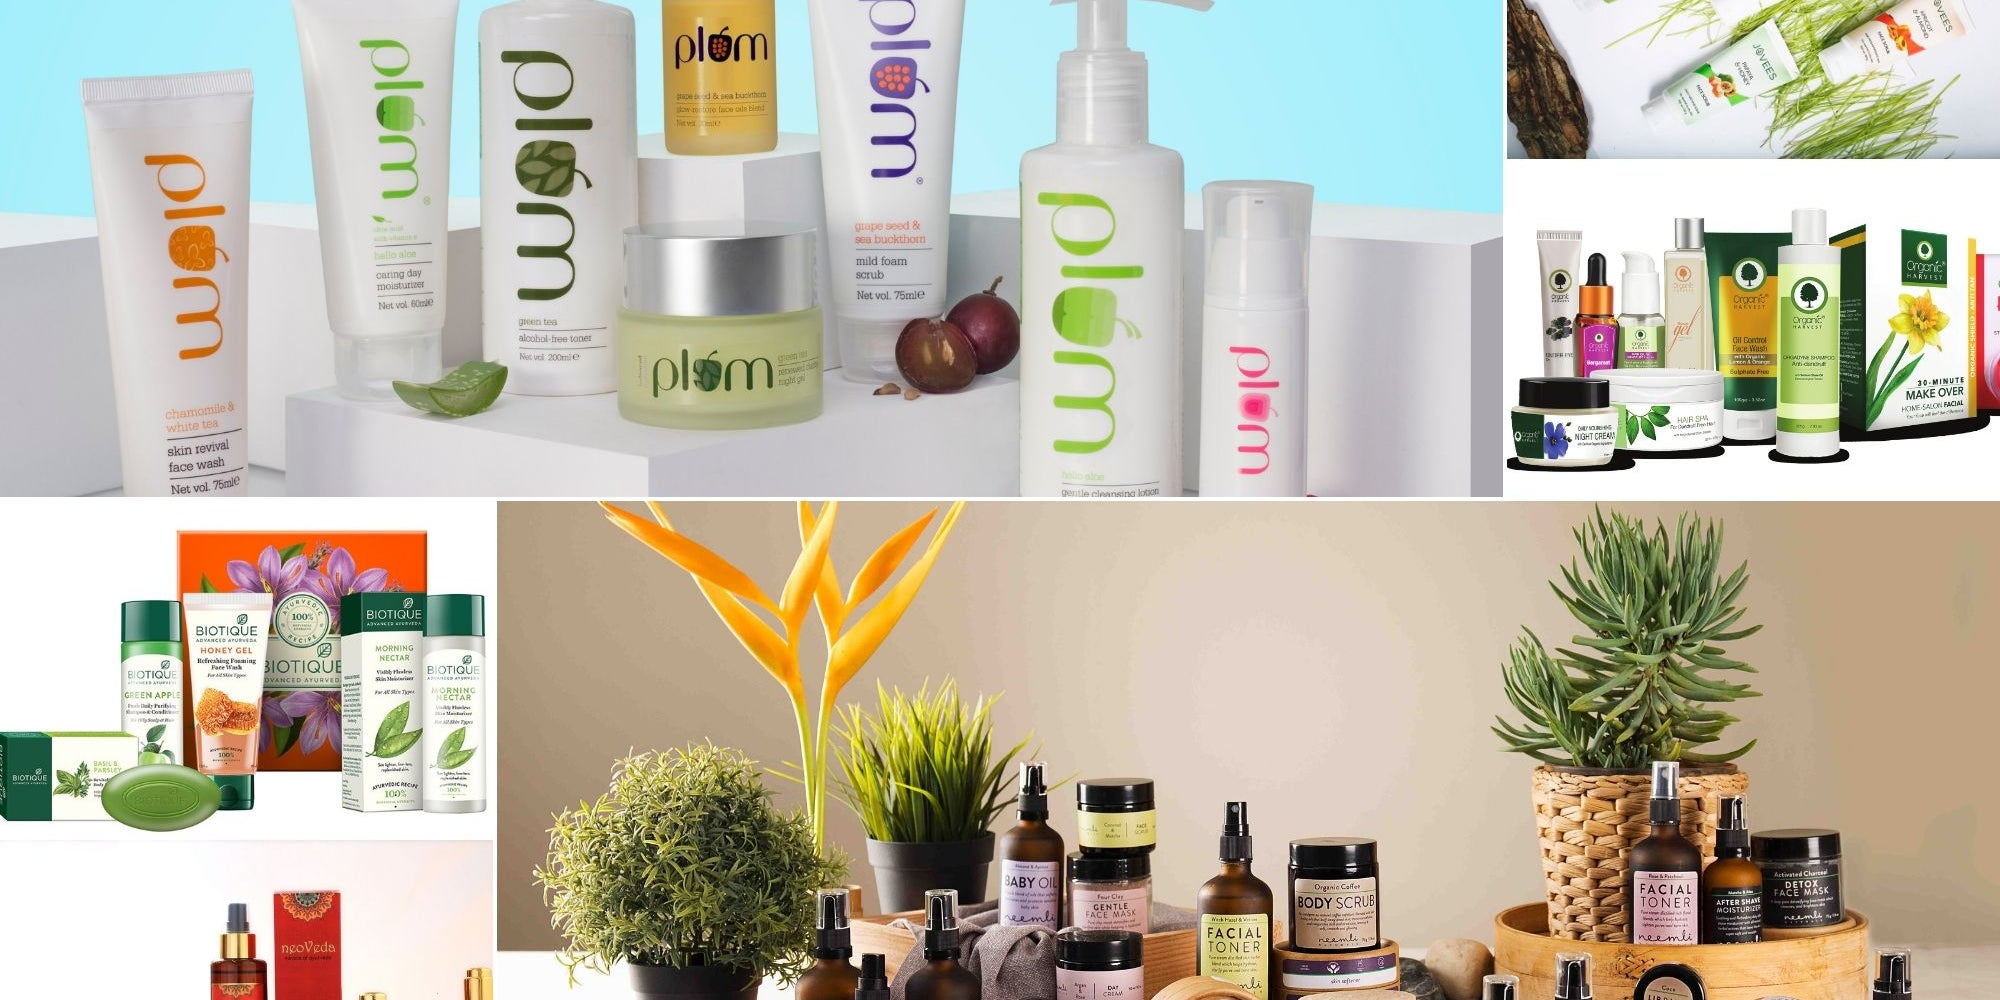 It's Time to Take the Chemical-free Route With These Natural Skincare Brands